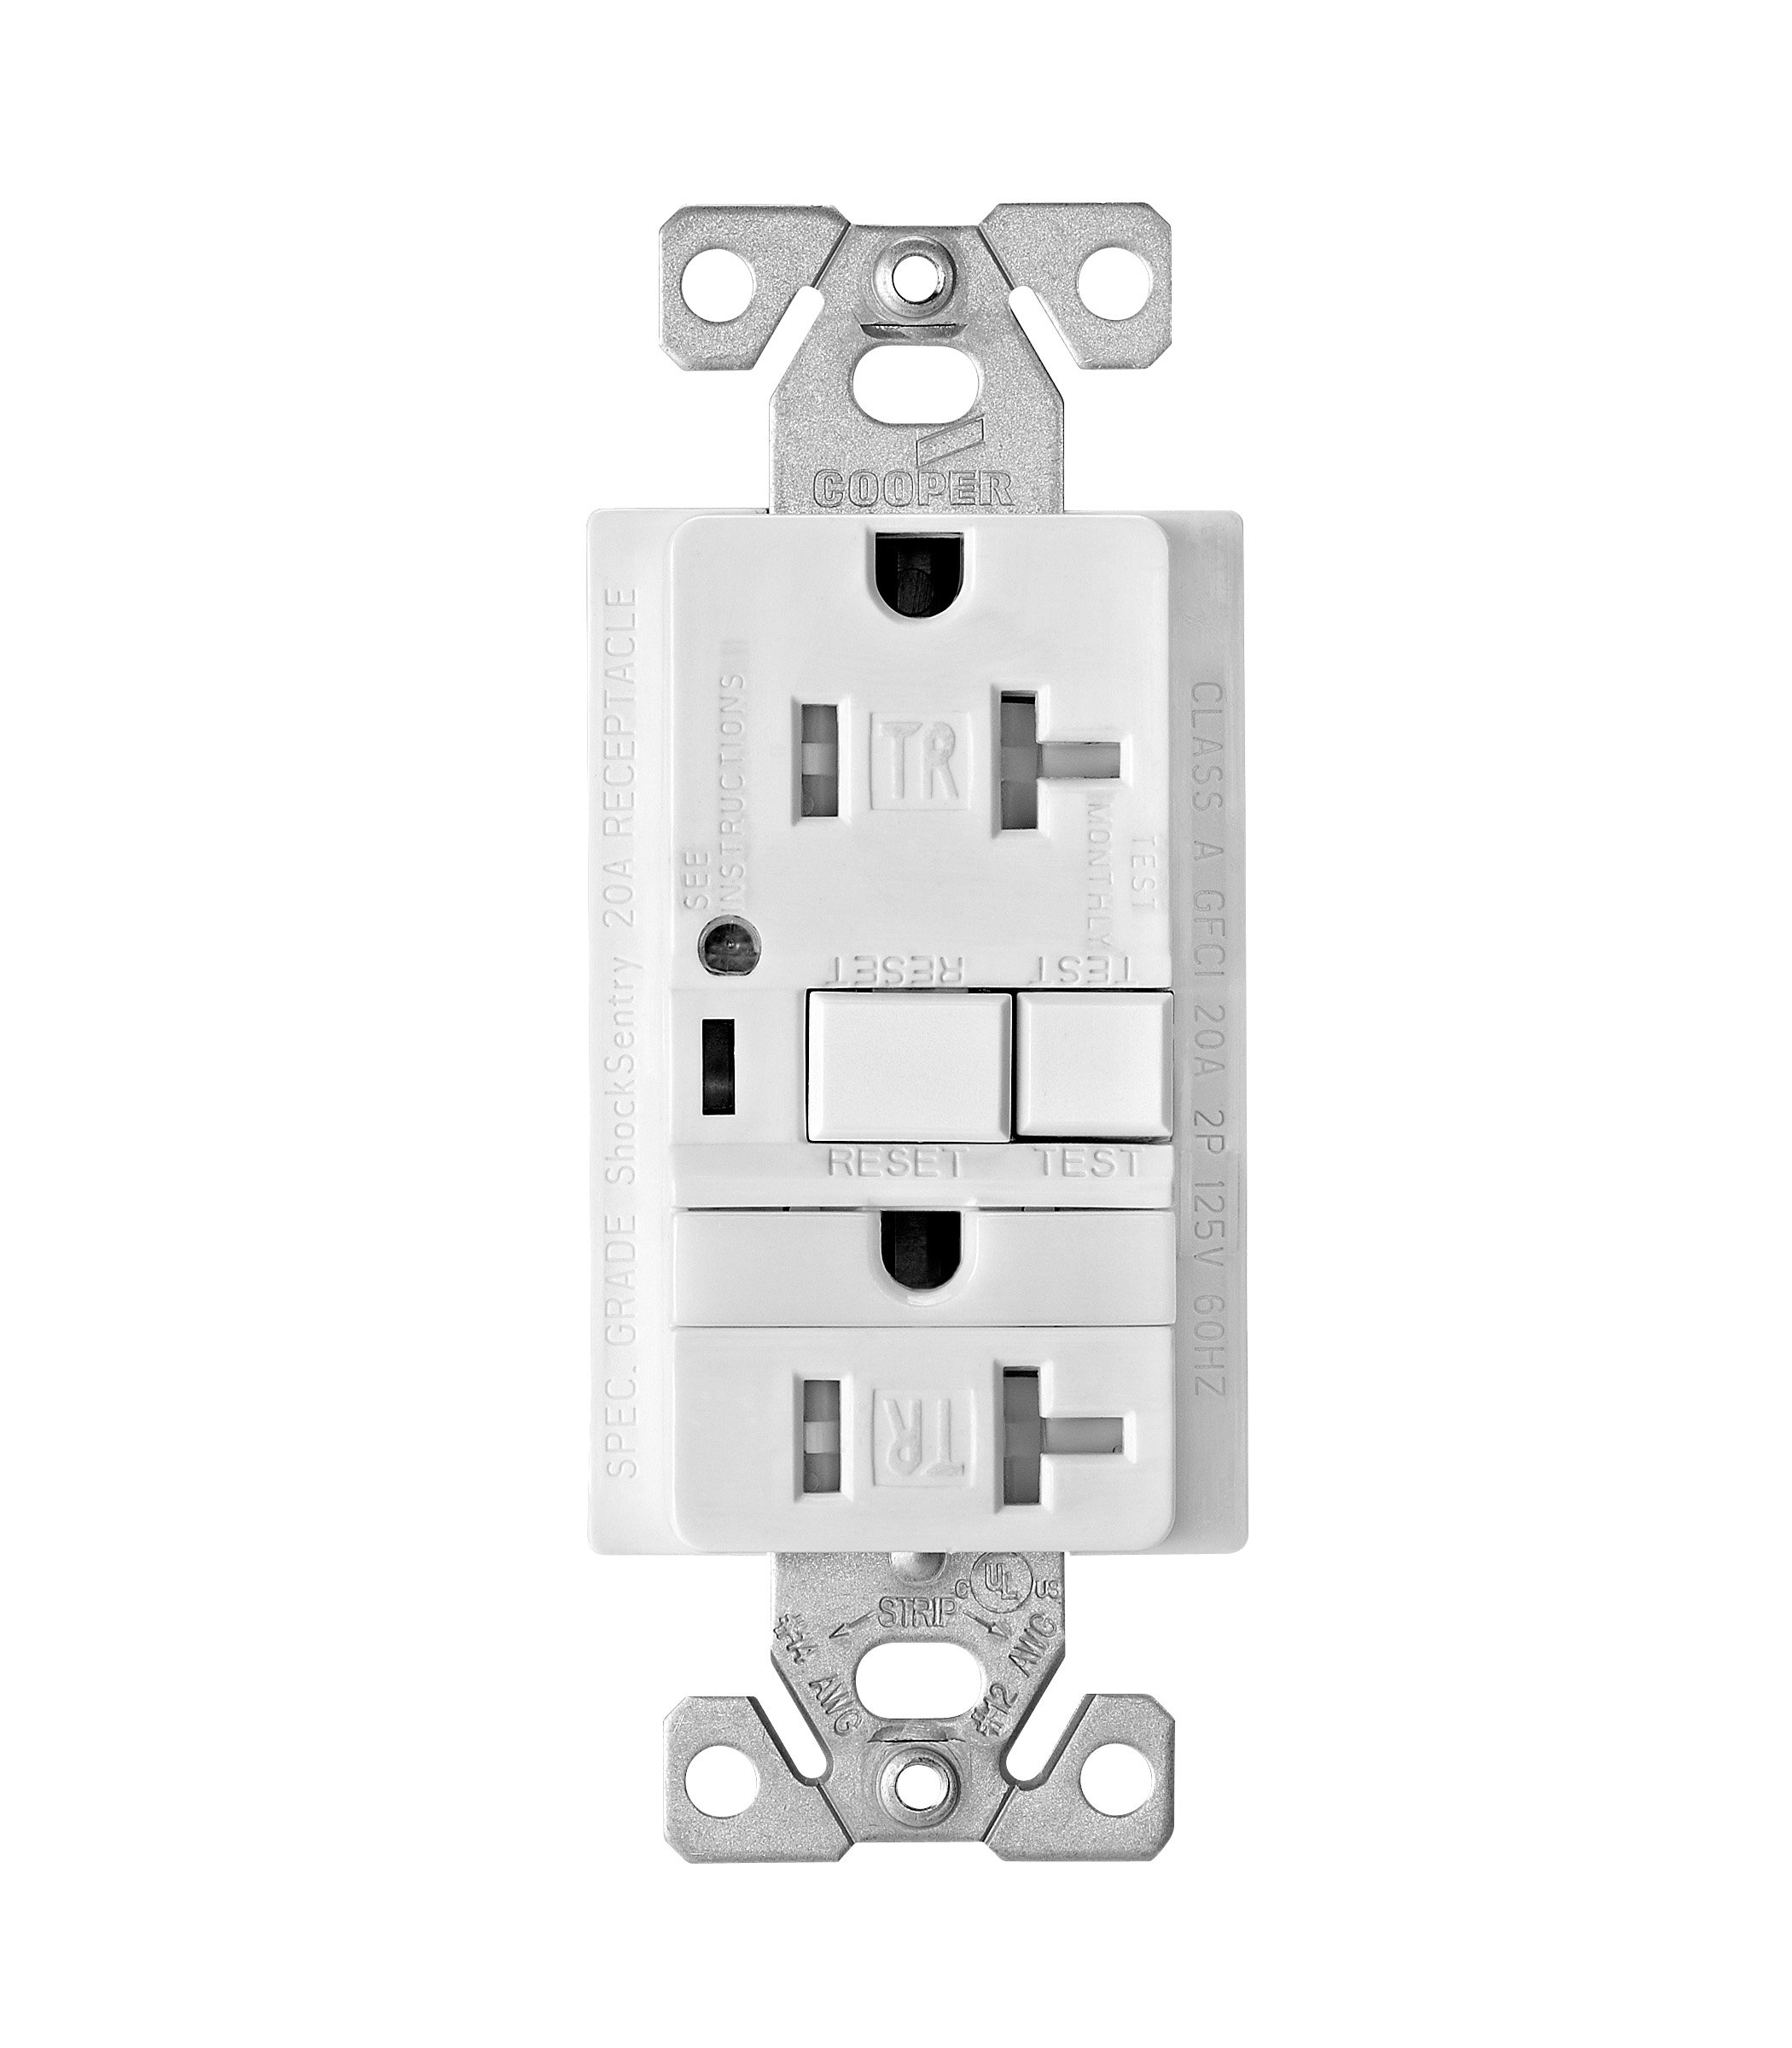 Eaton TRVGFNL20W Tamper Resistant 20-Amp Combination GFCI Receptacle with Nightlight, White Finish